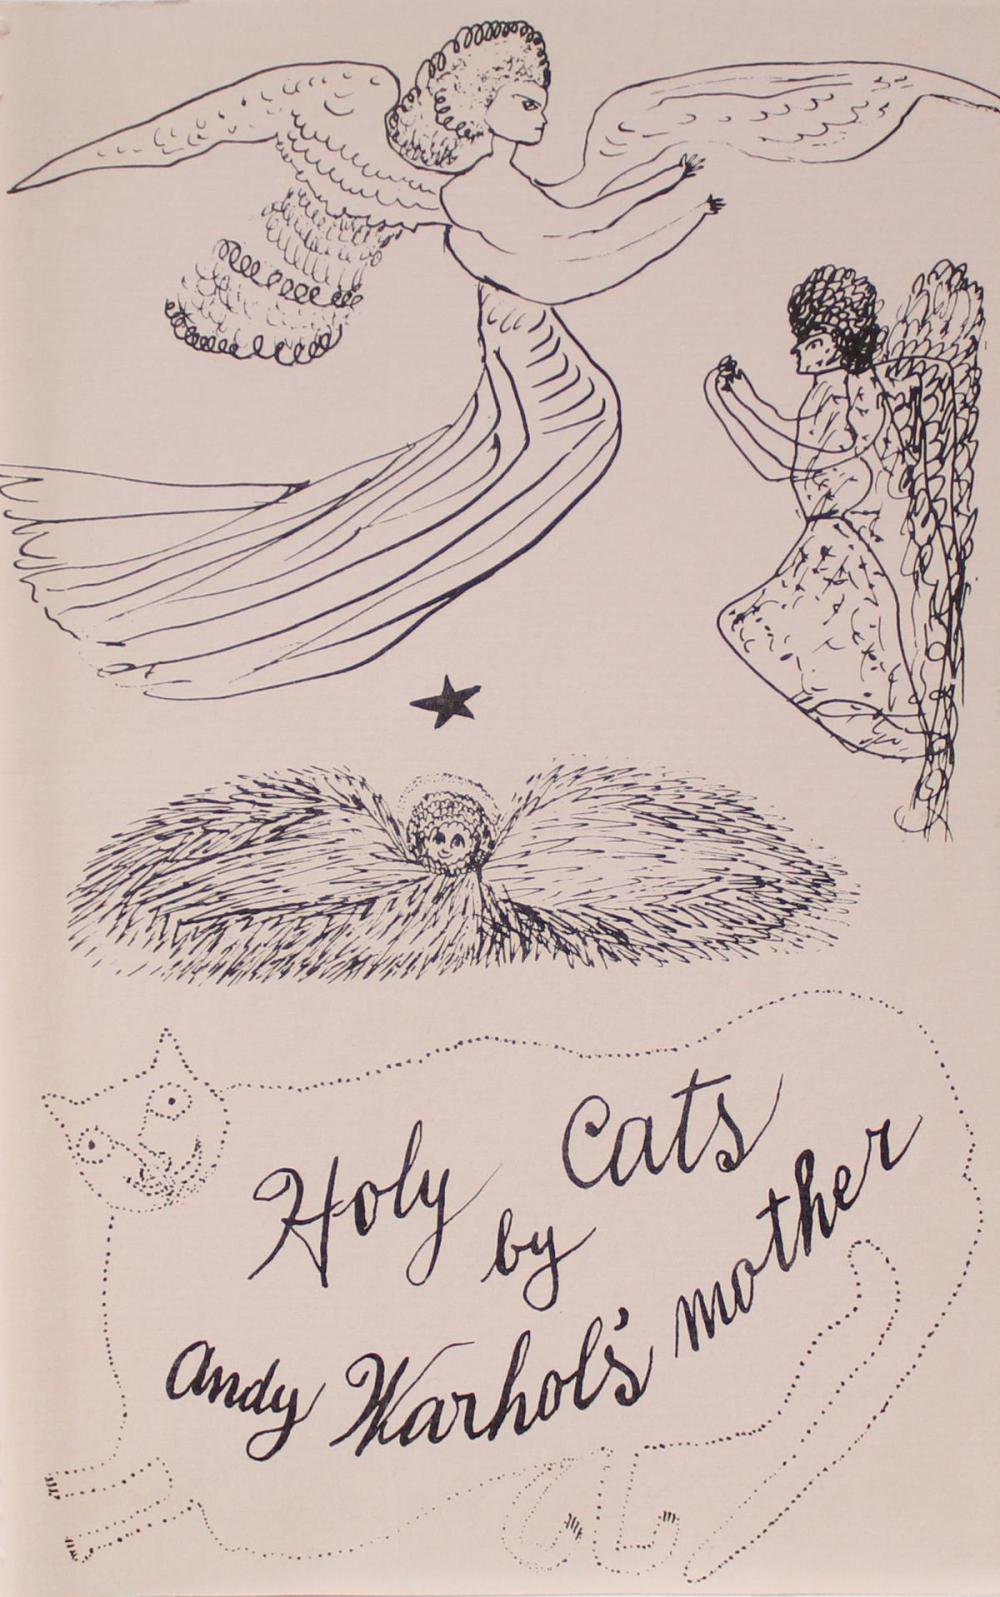 Andy Warhol - Holy Cats by Andy Warhol's Mother